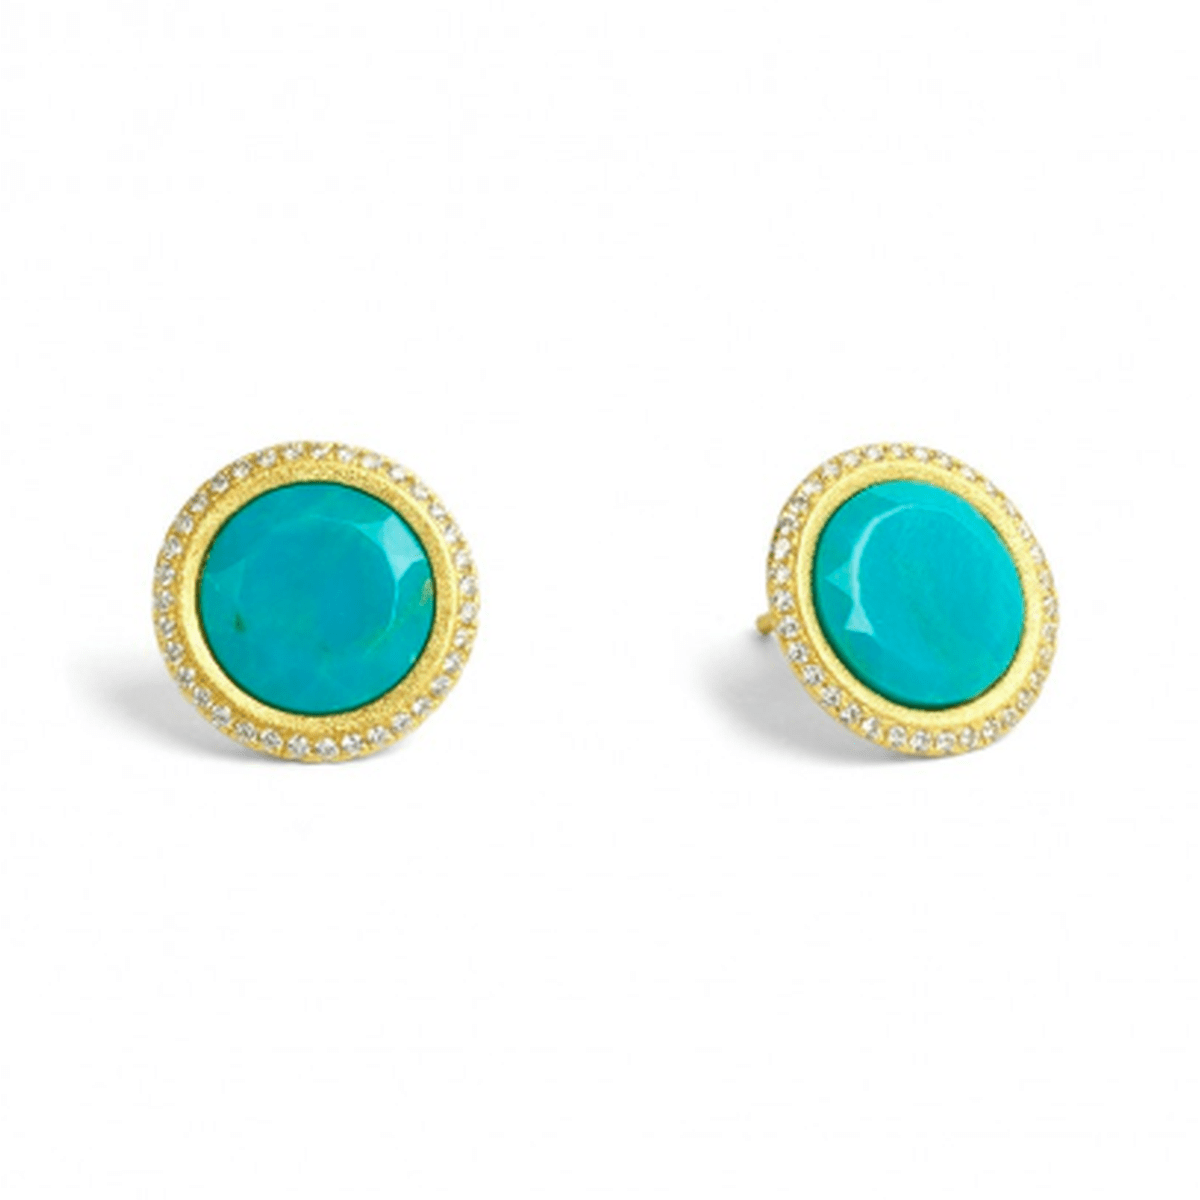 Tisanni Blue Turquoise Pin Earrings - 19804256-Bernd Wolf-Renee Taylor Gallery